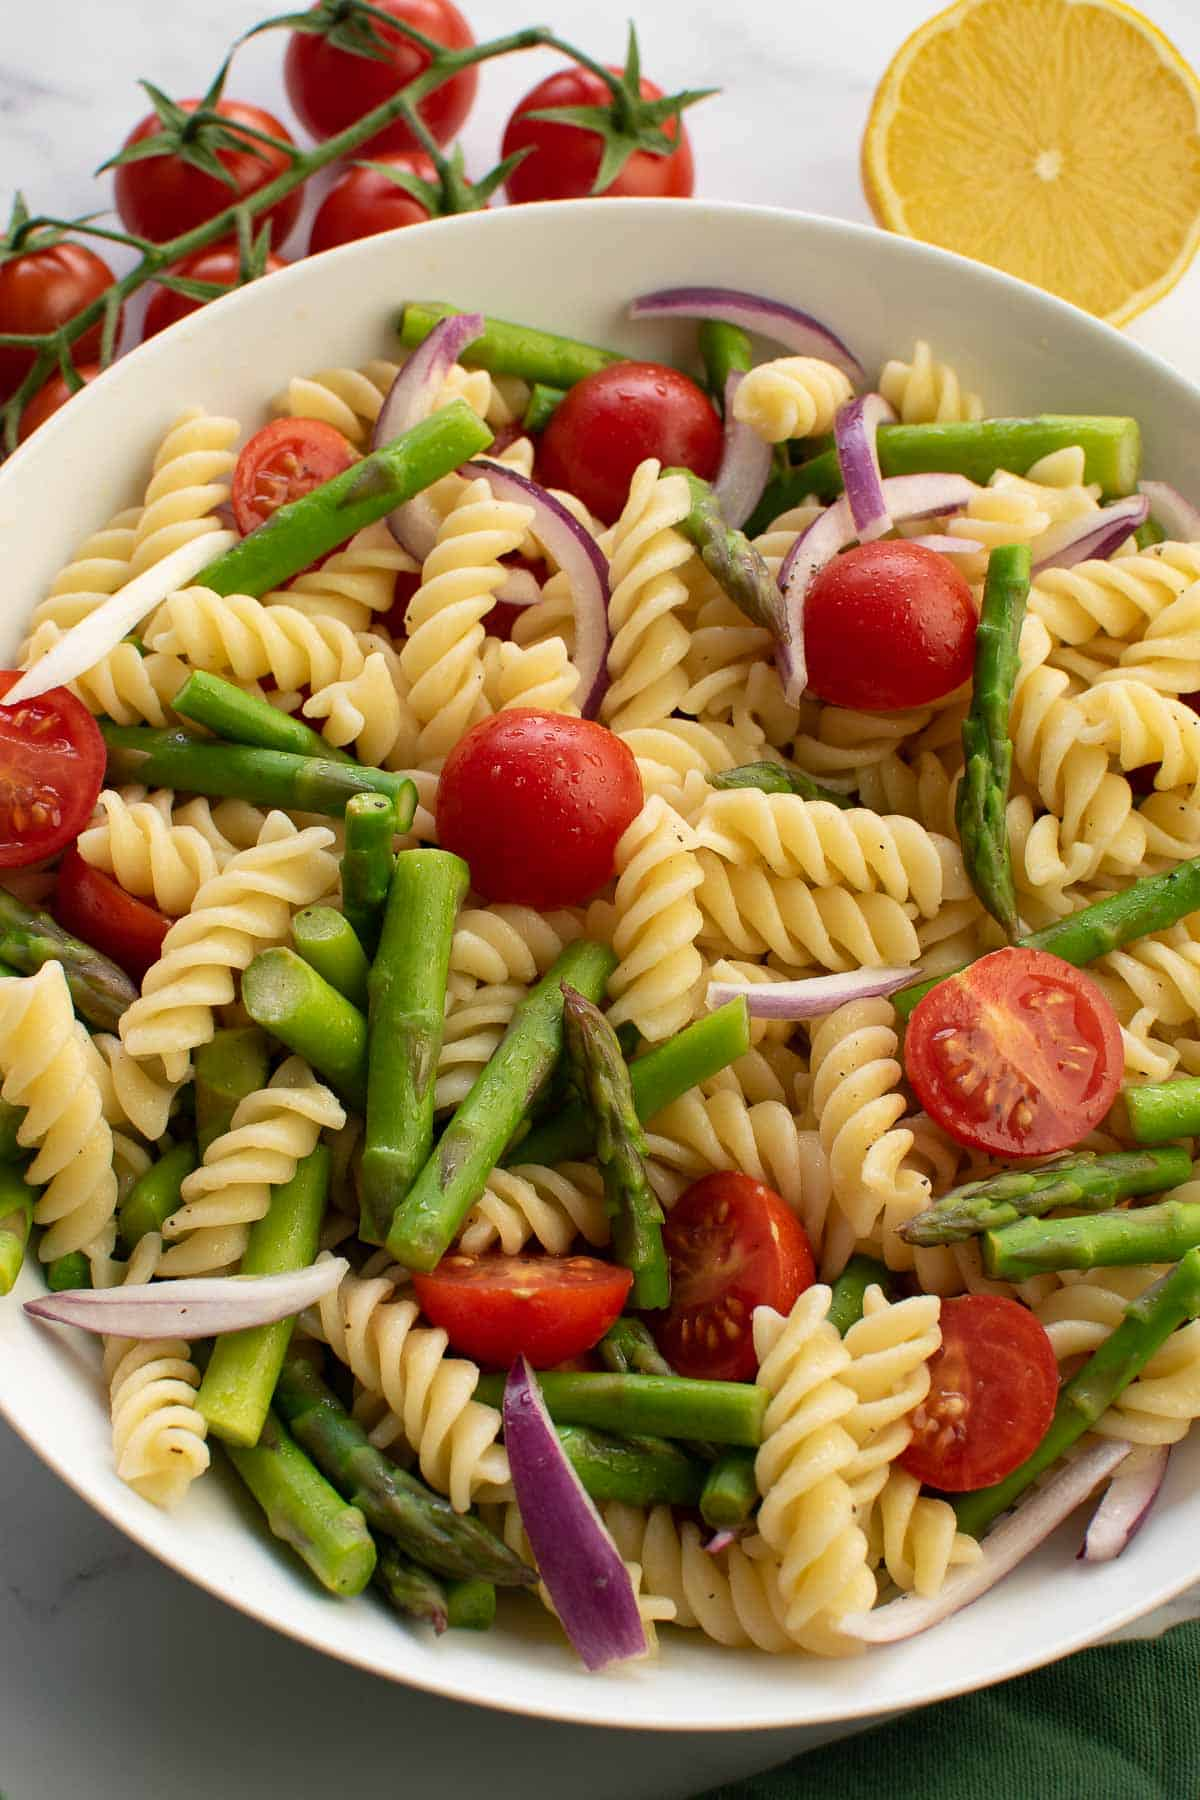 Asparagus pasta salad in a bowl.